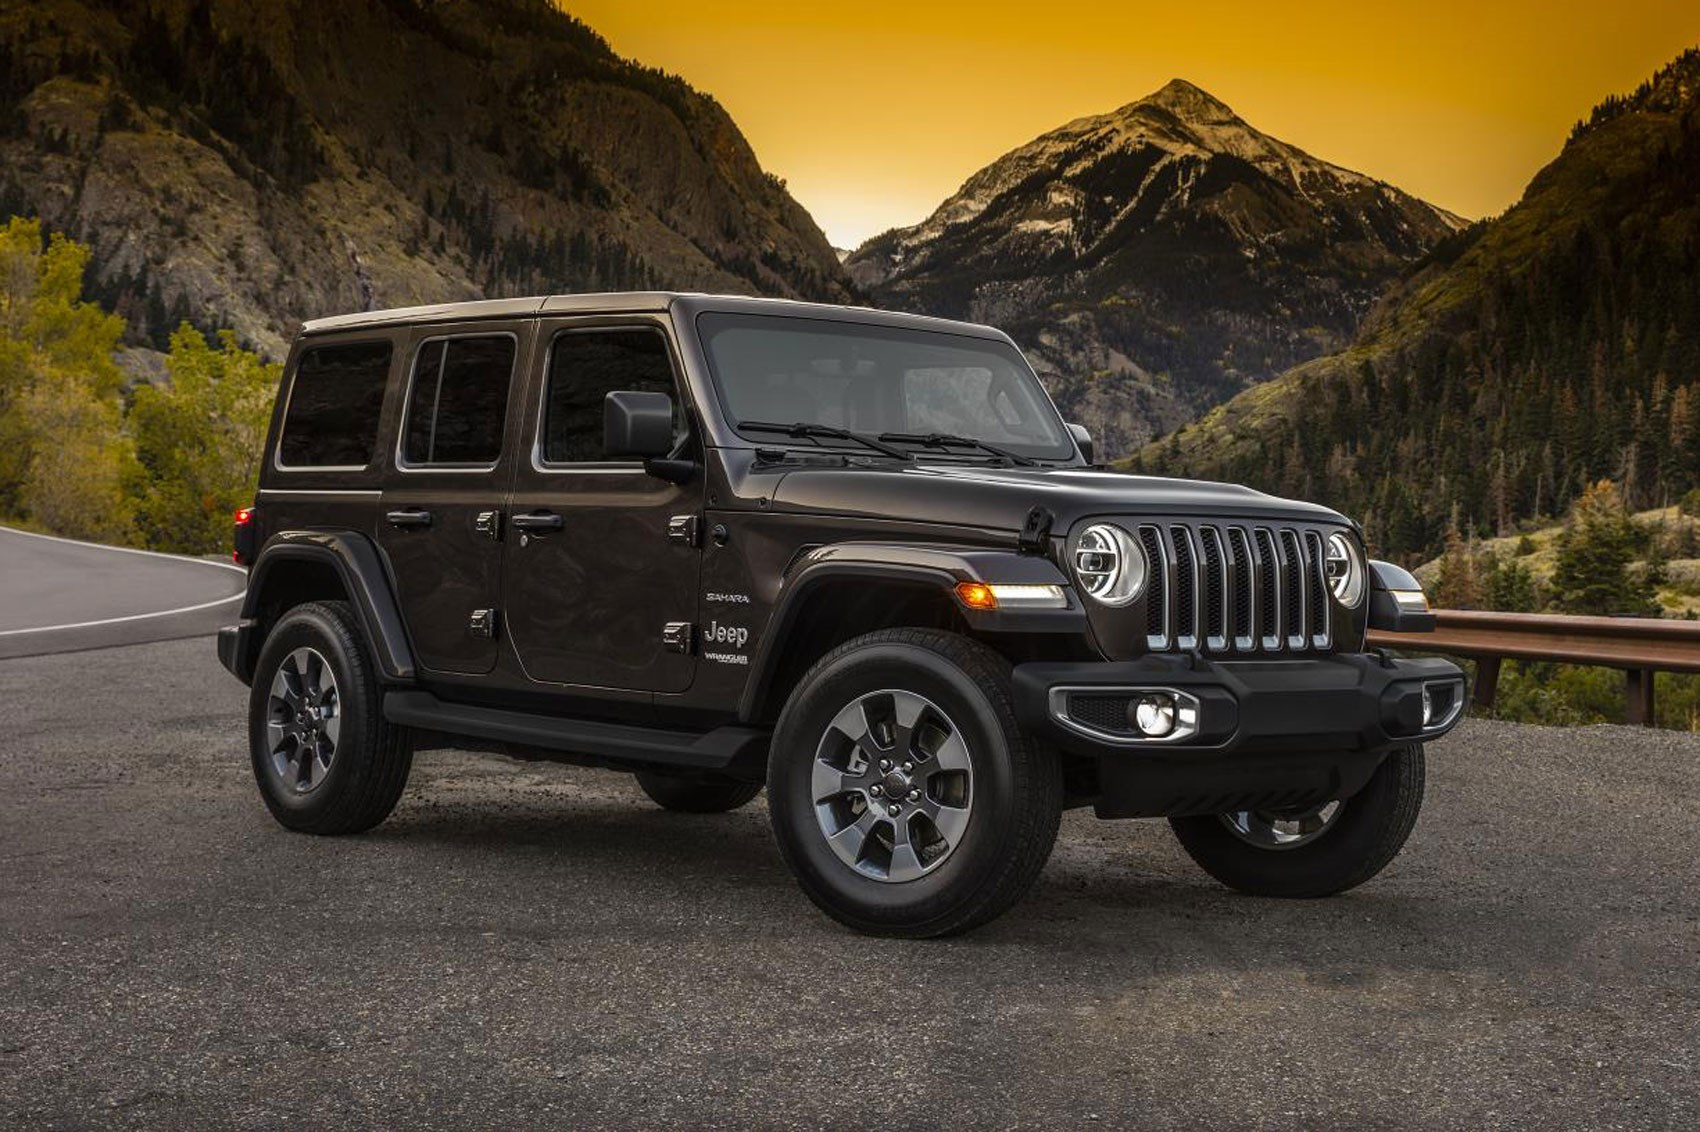 new 2018 jeep wrangler first official pictures by car magazine. Black Bedroom Furniture Sets. Home Design Ideas